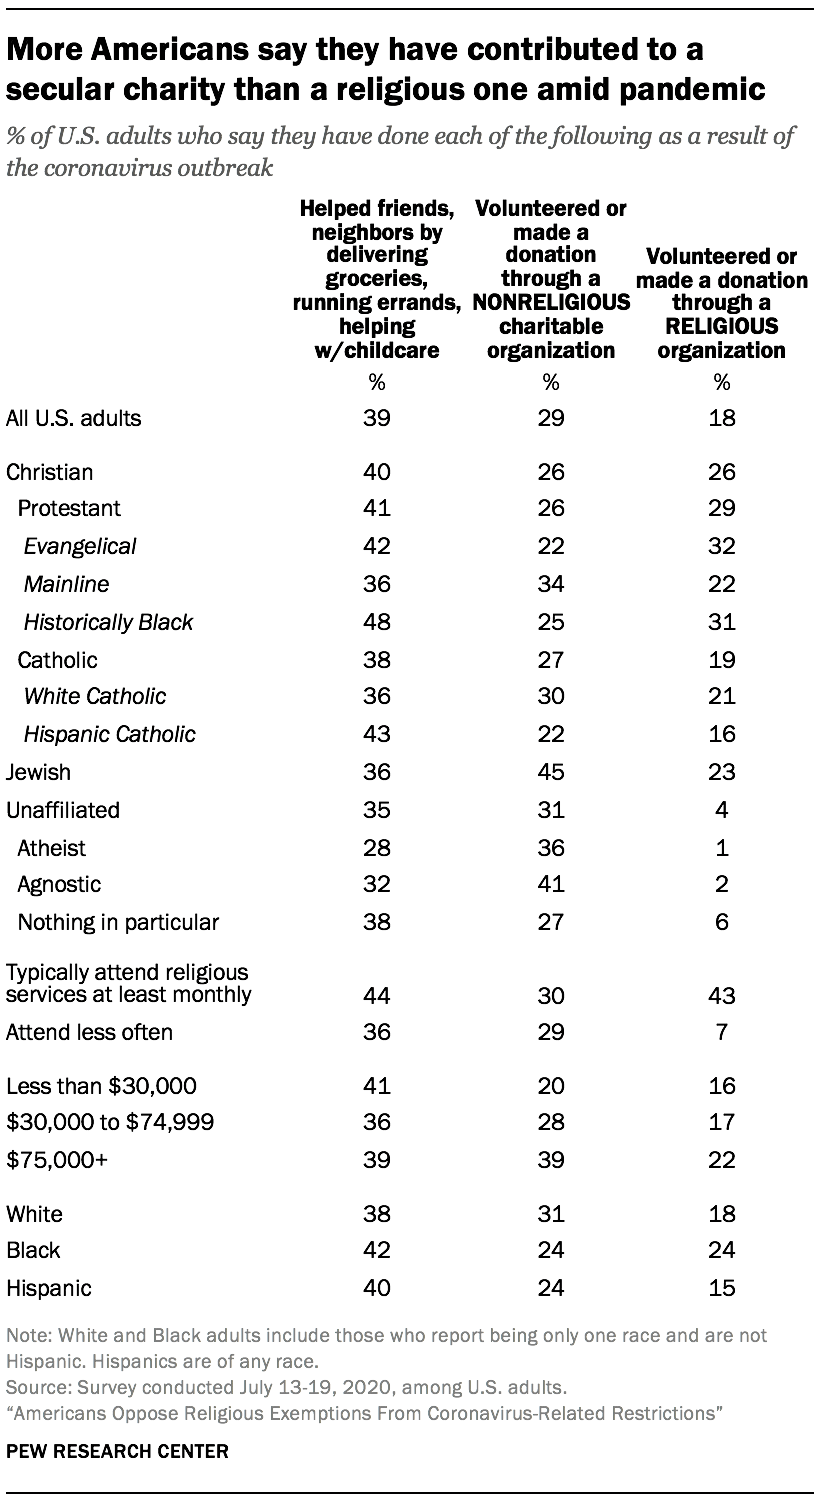 More Americans say they have contributed to a secular charity than a religious one amid pandemic